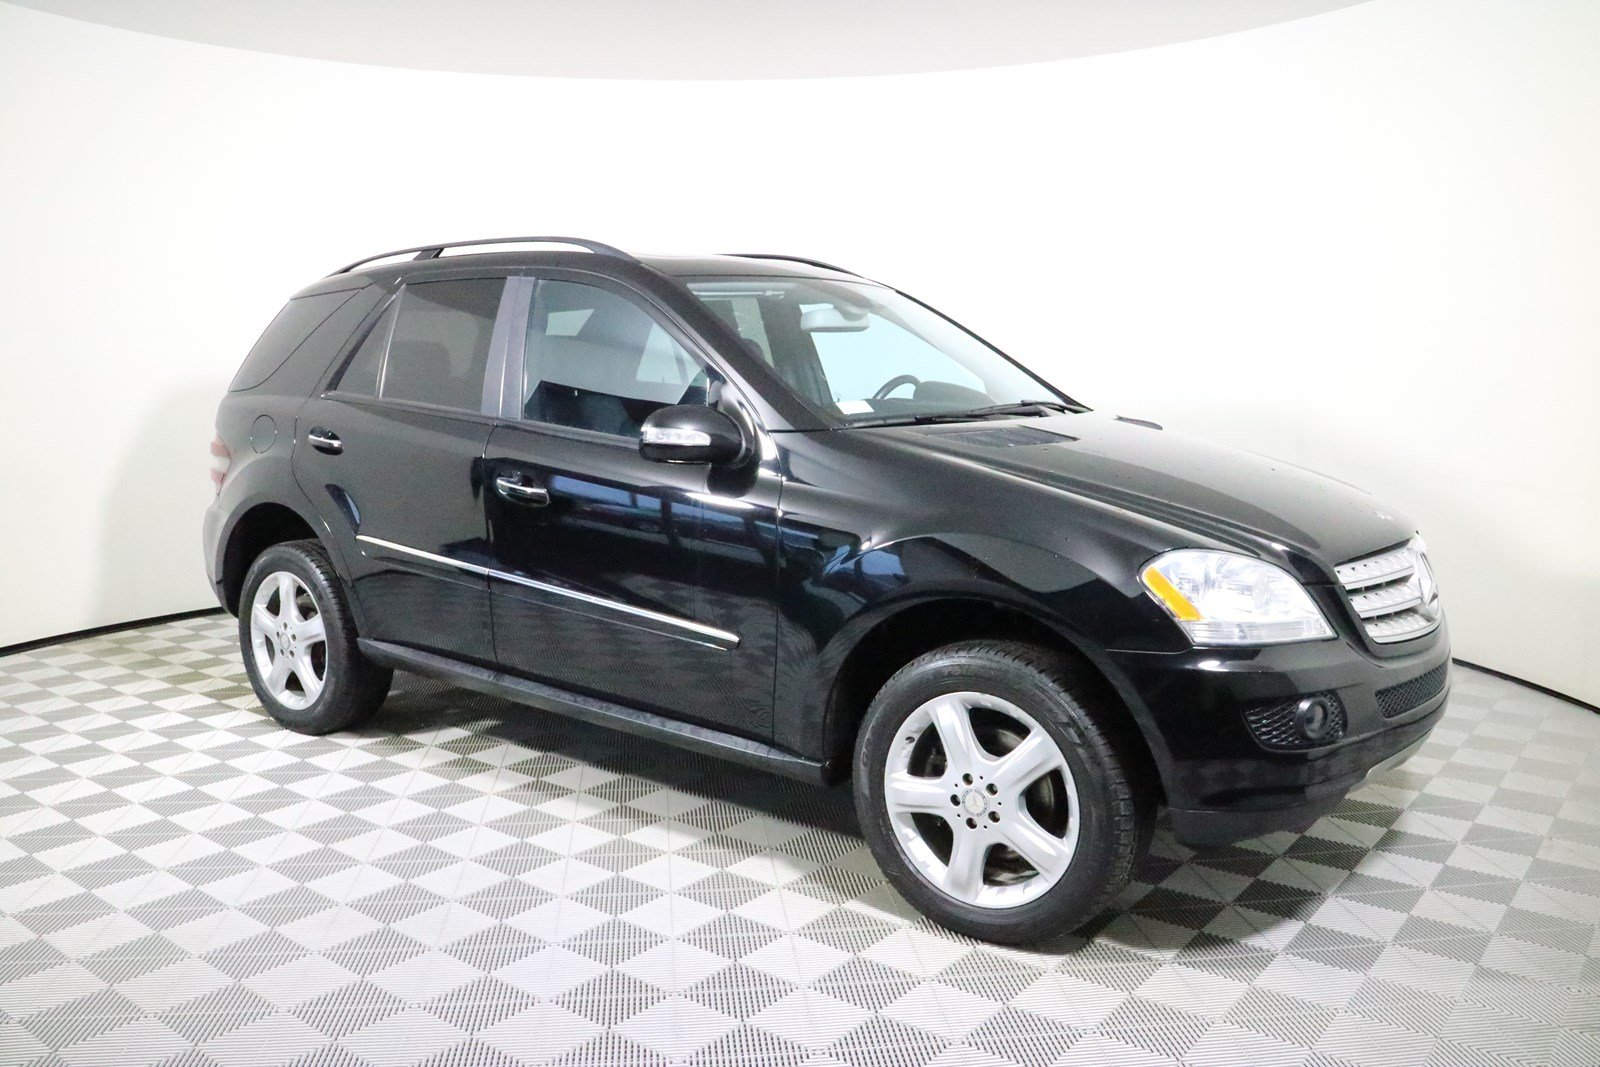 pre owned 2008 mercedes benz m class ml 320 suv in. Black Bedroom Furniture Sets. Home Design Ideas